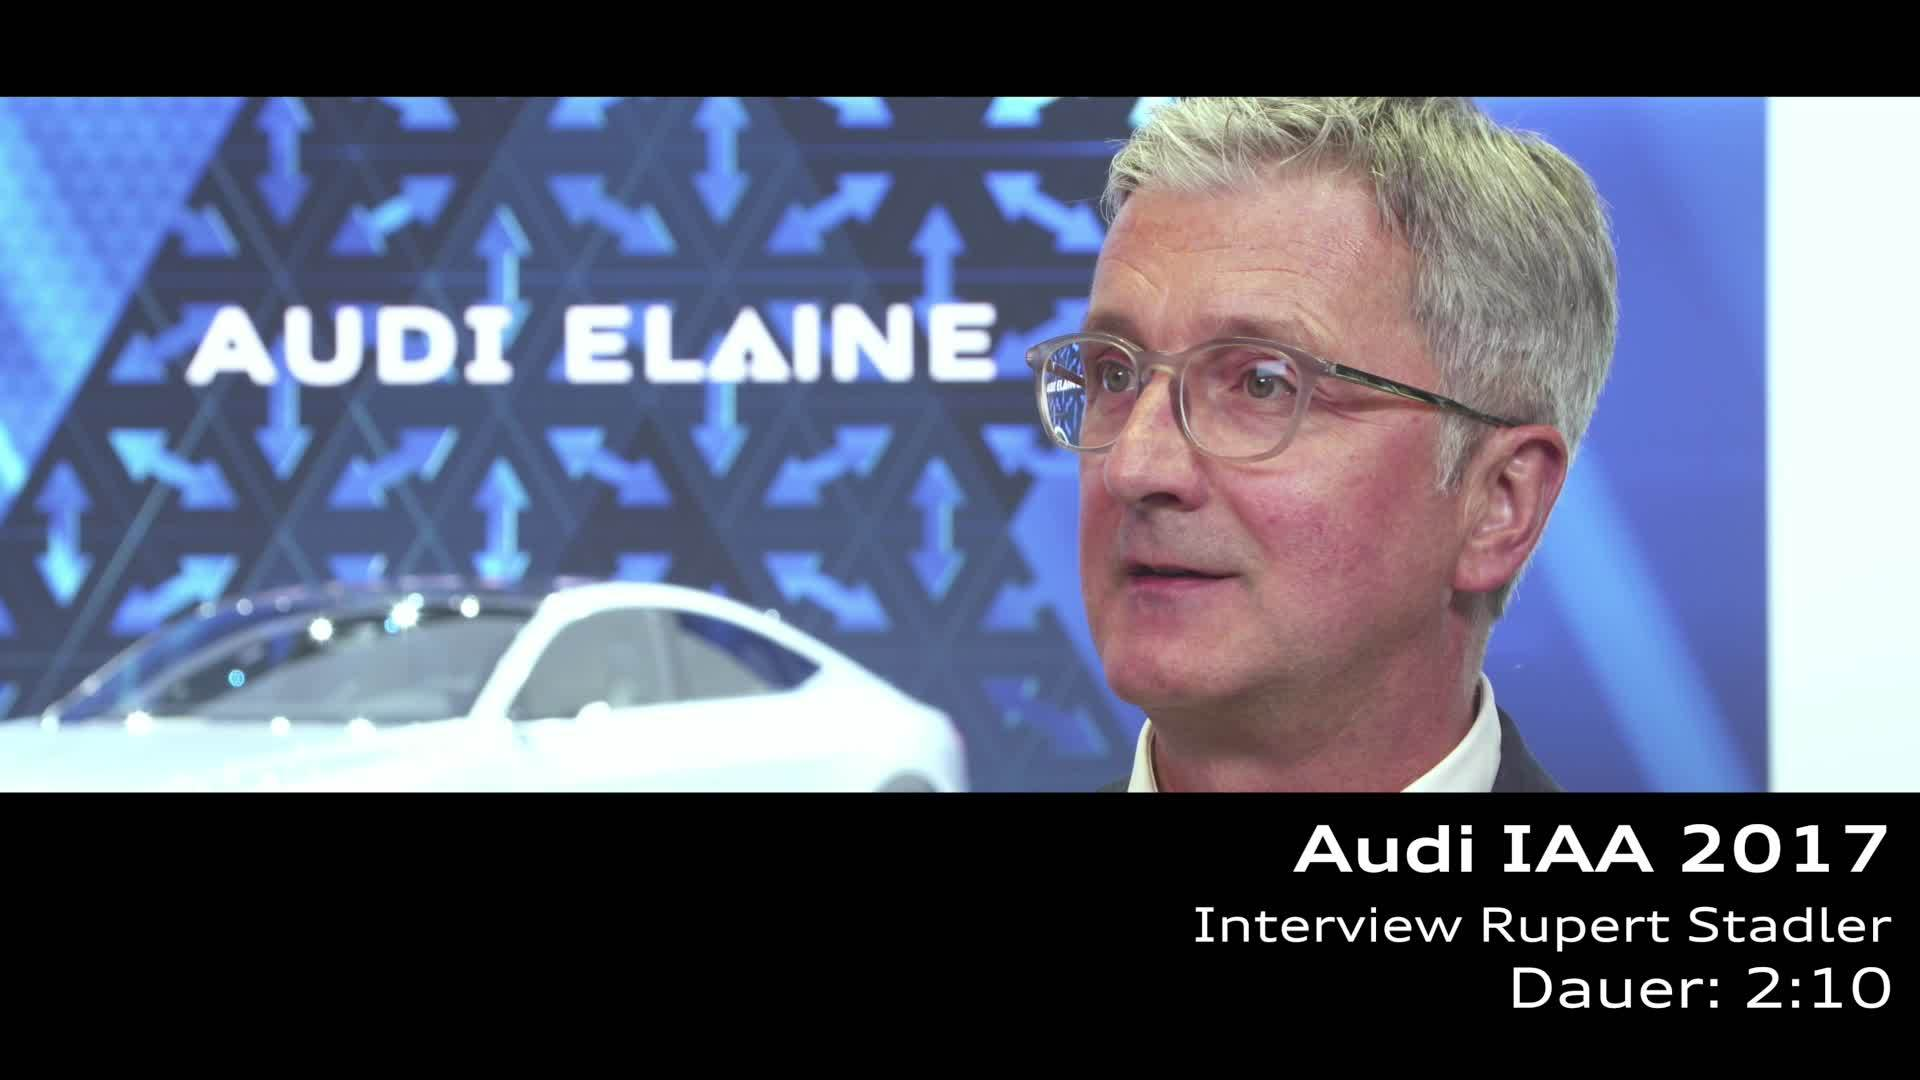 Audi IAA 2017: Interview Rupert Stadler